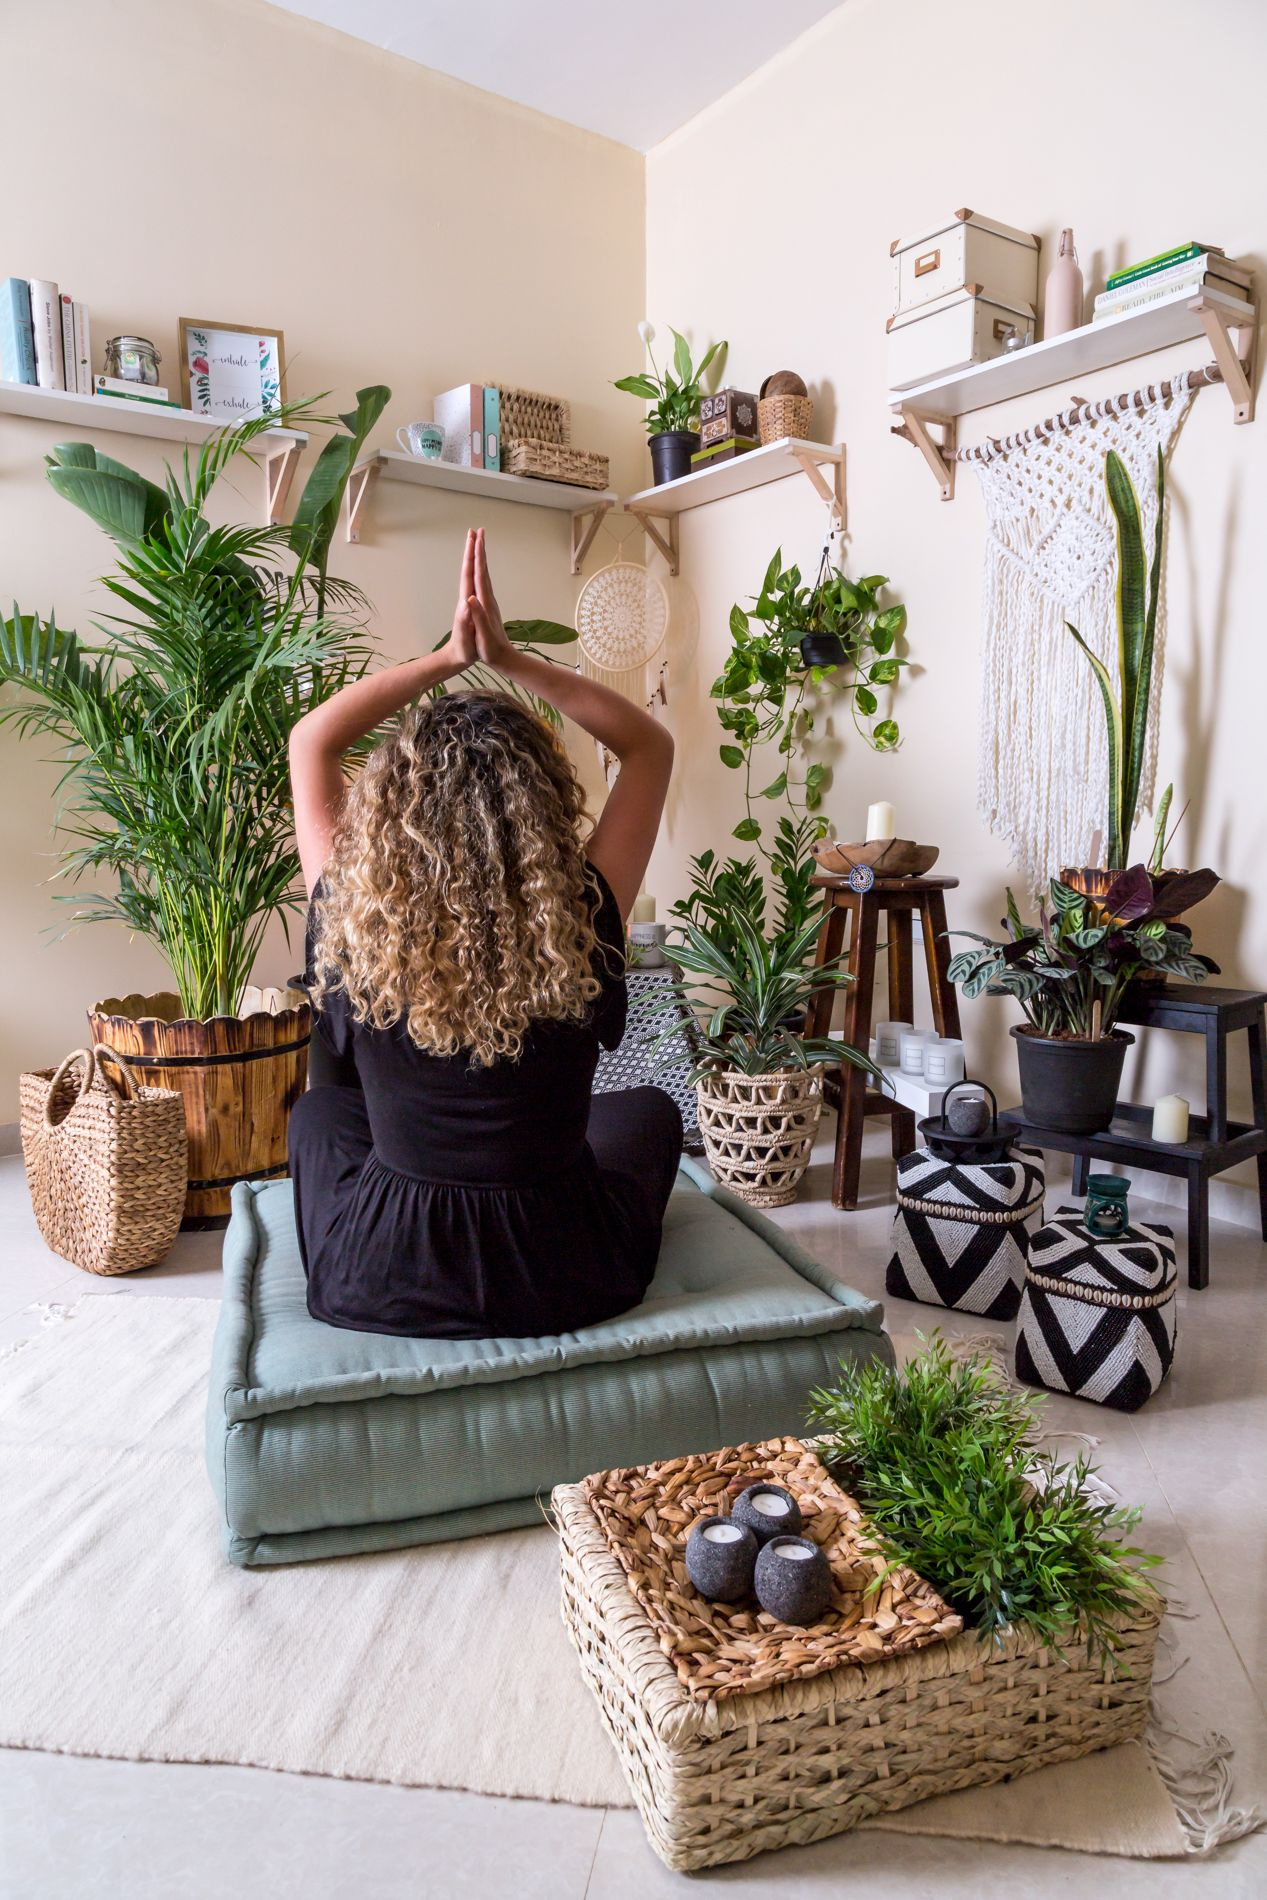 9 Simple Steps to Creating Your Own Meditation Corner At Home